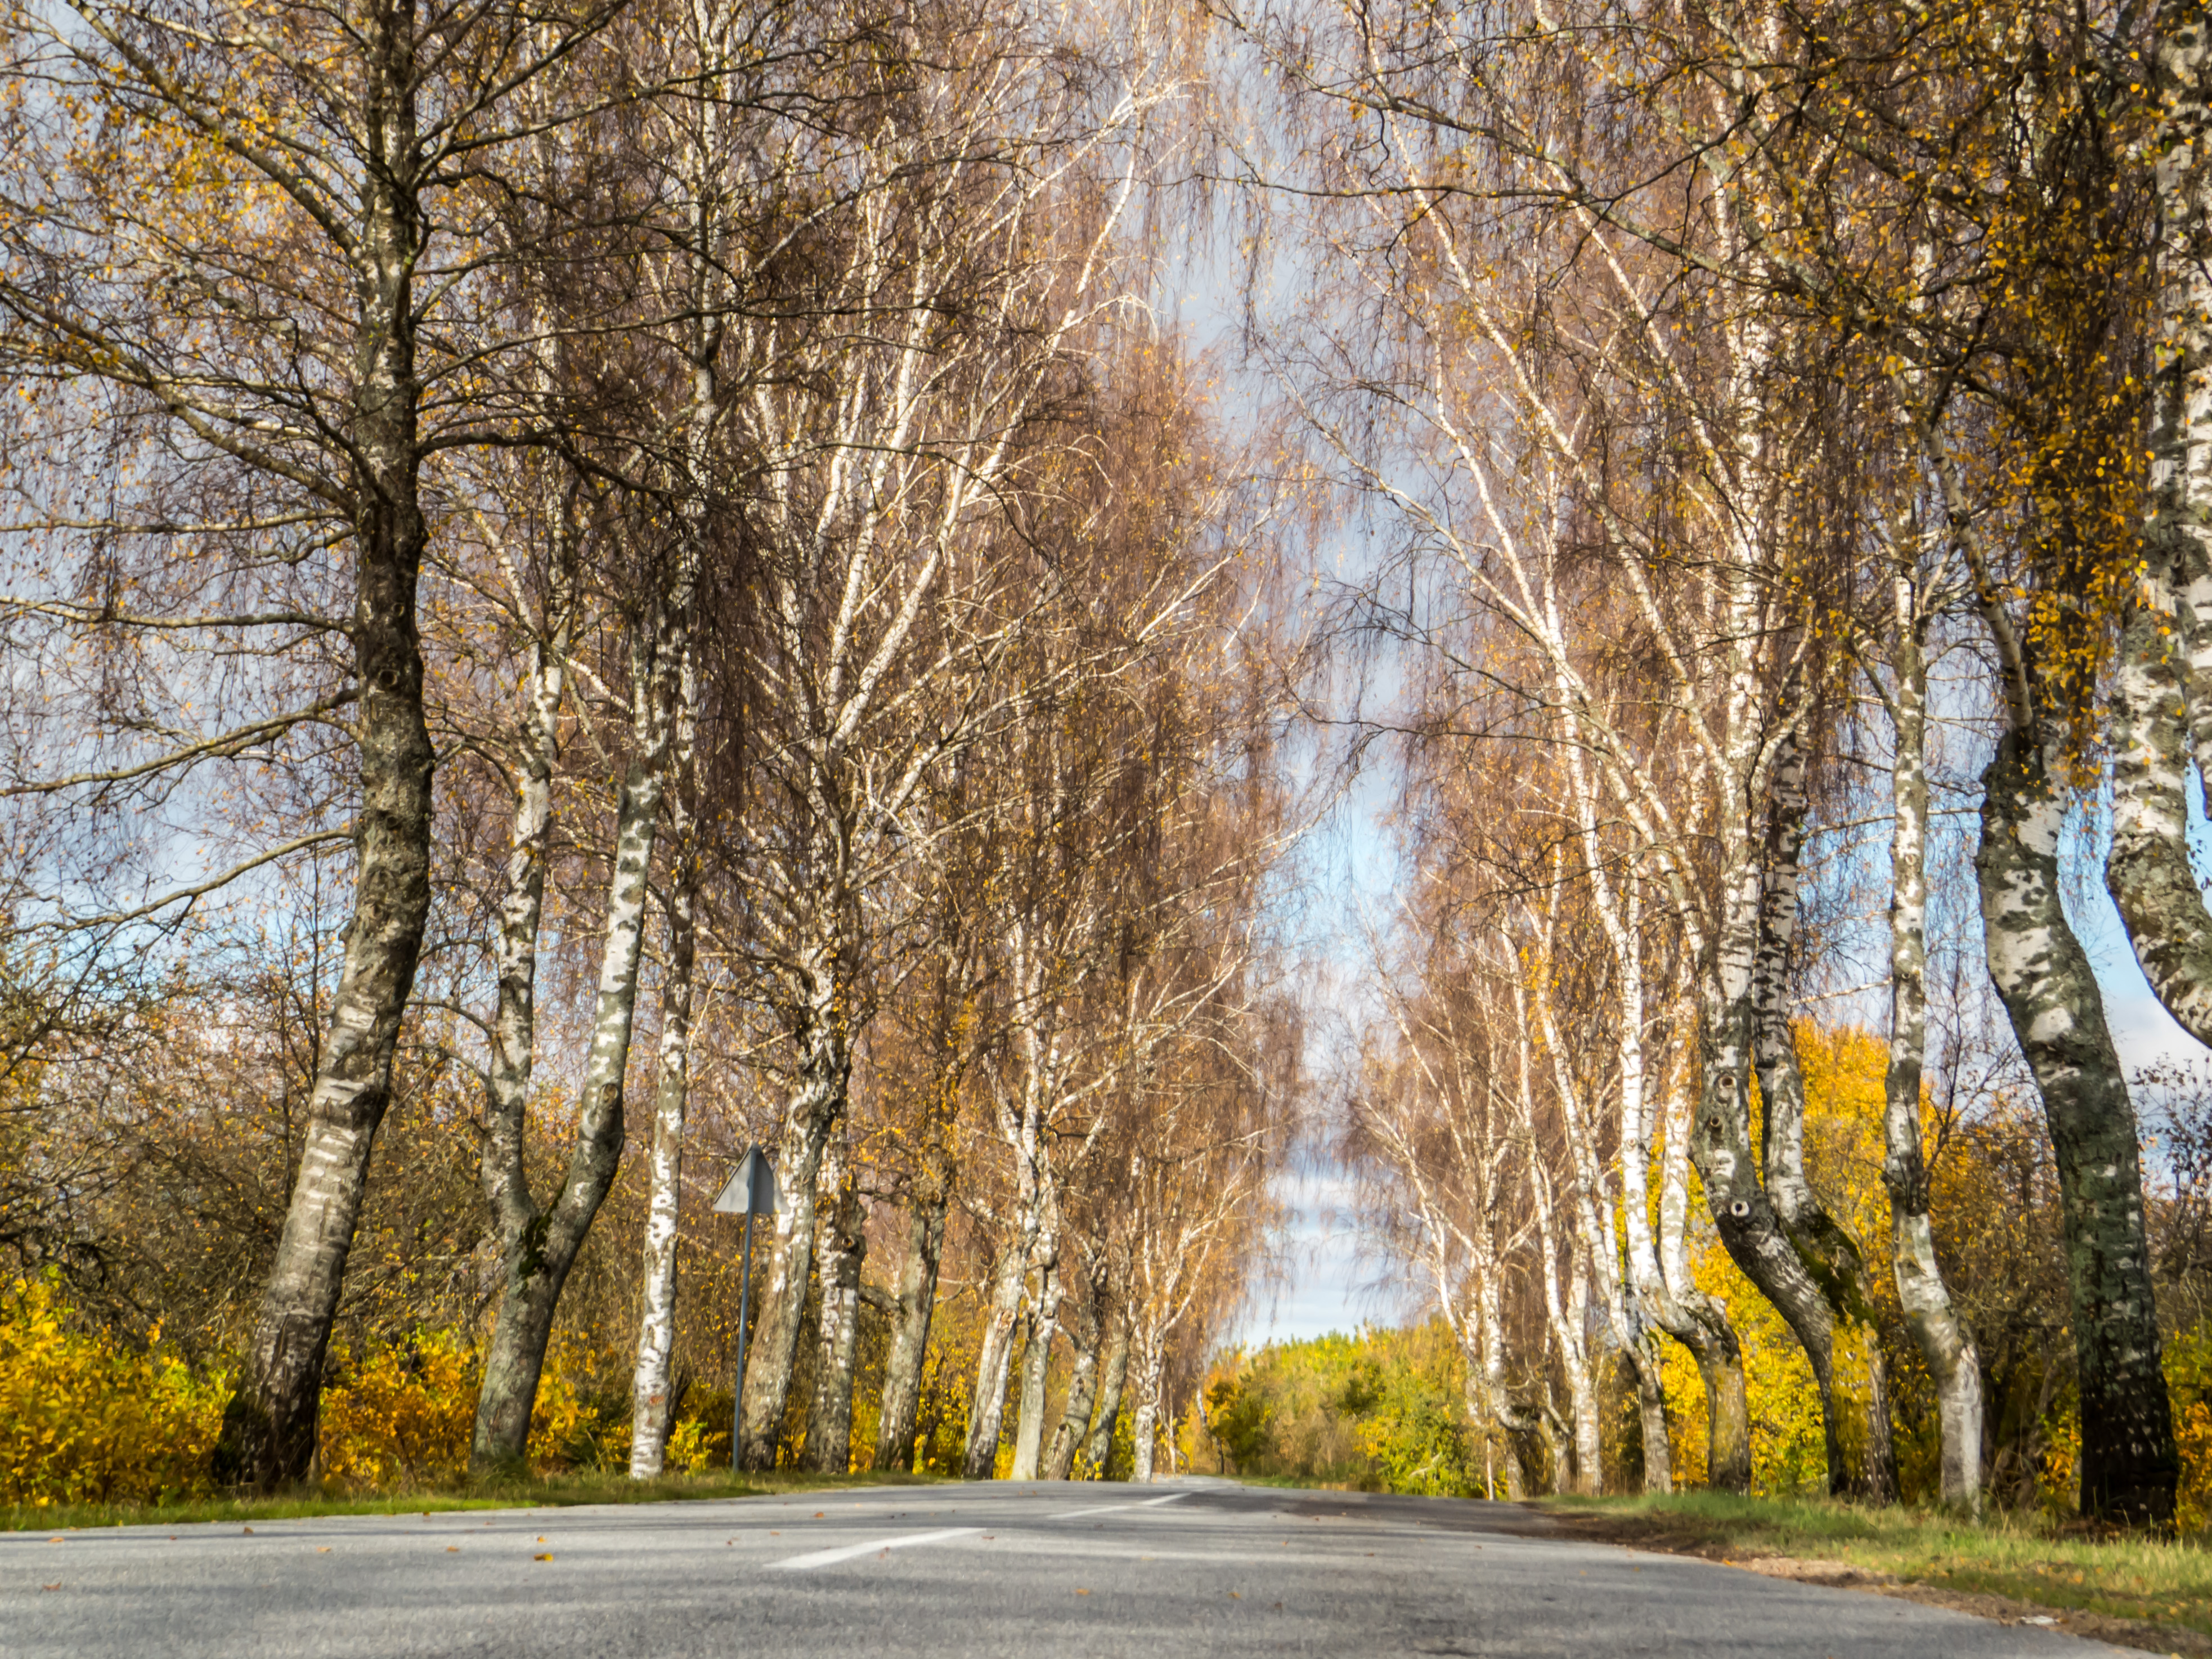 Fall from the mid of the road, Alley, Latvia, Sunny, Street, HQ Photo